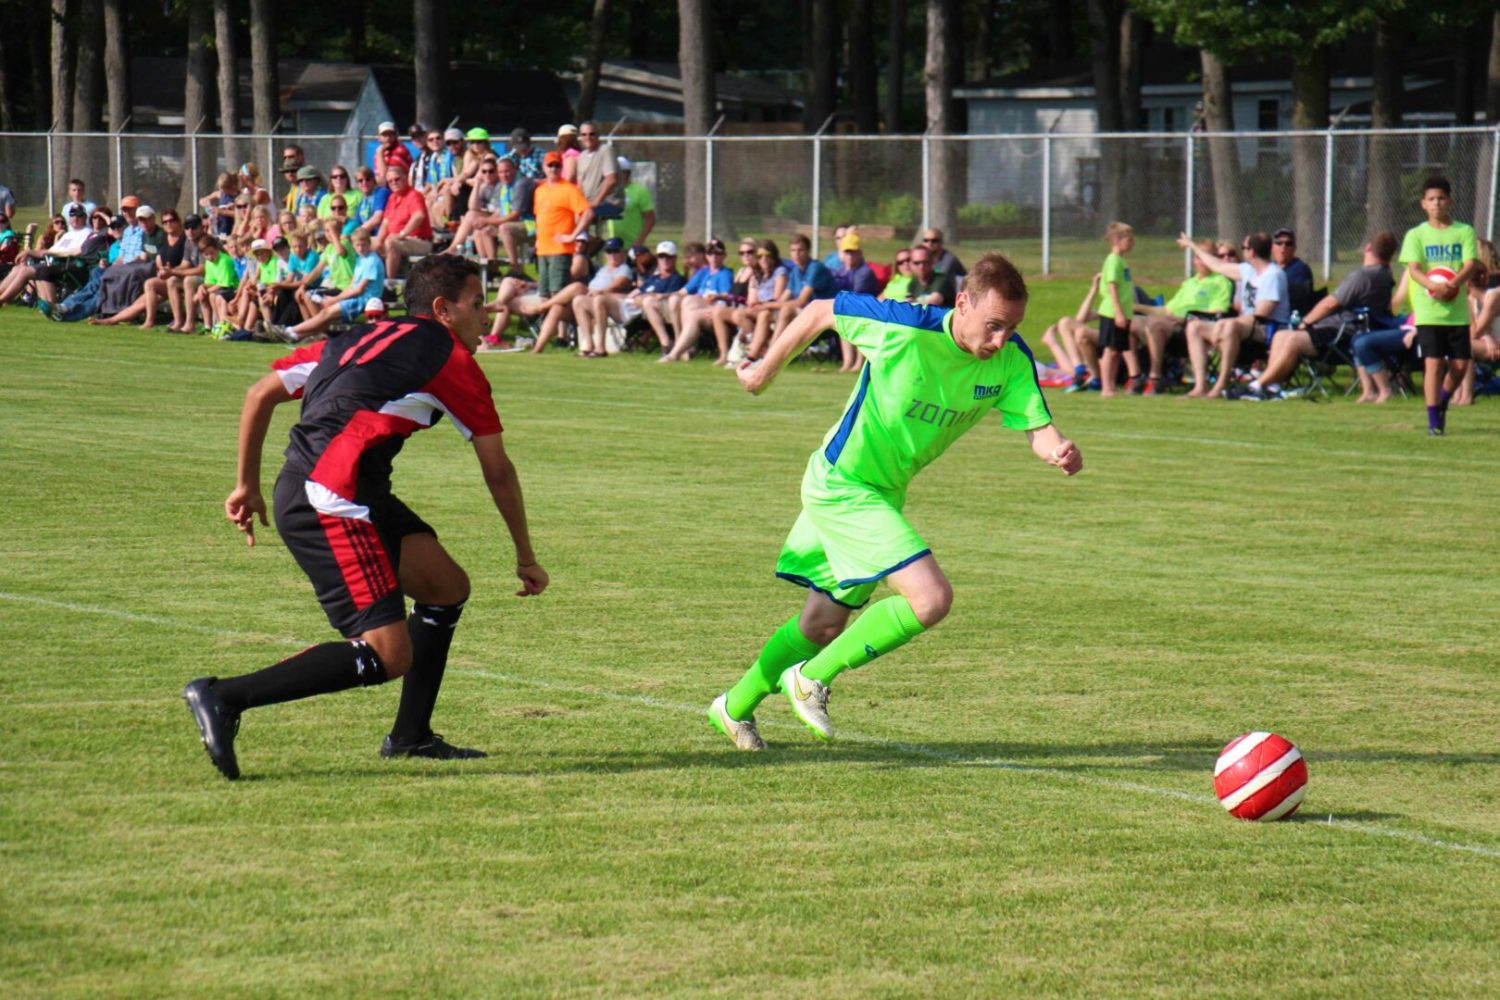 Muskegon Risers return to their winning ways at home with a 4-0 victory over the Michigan Stars